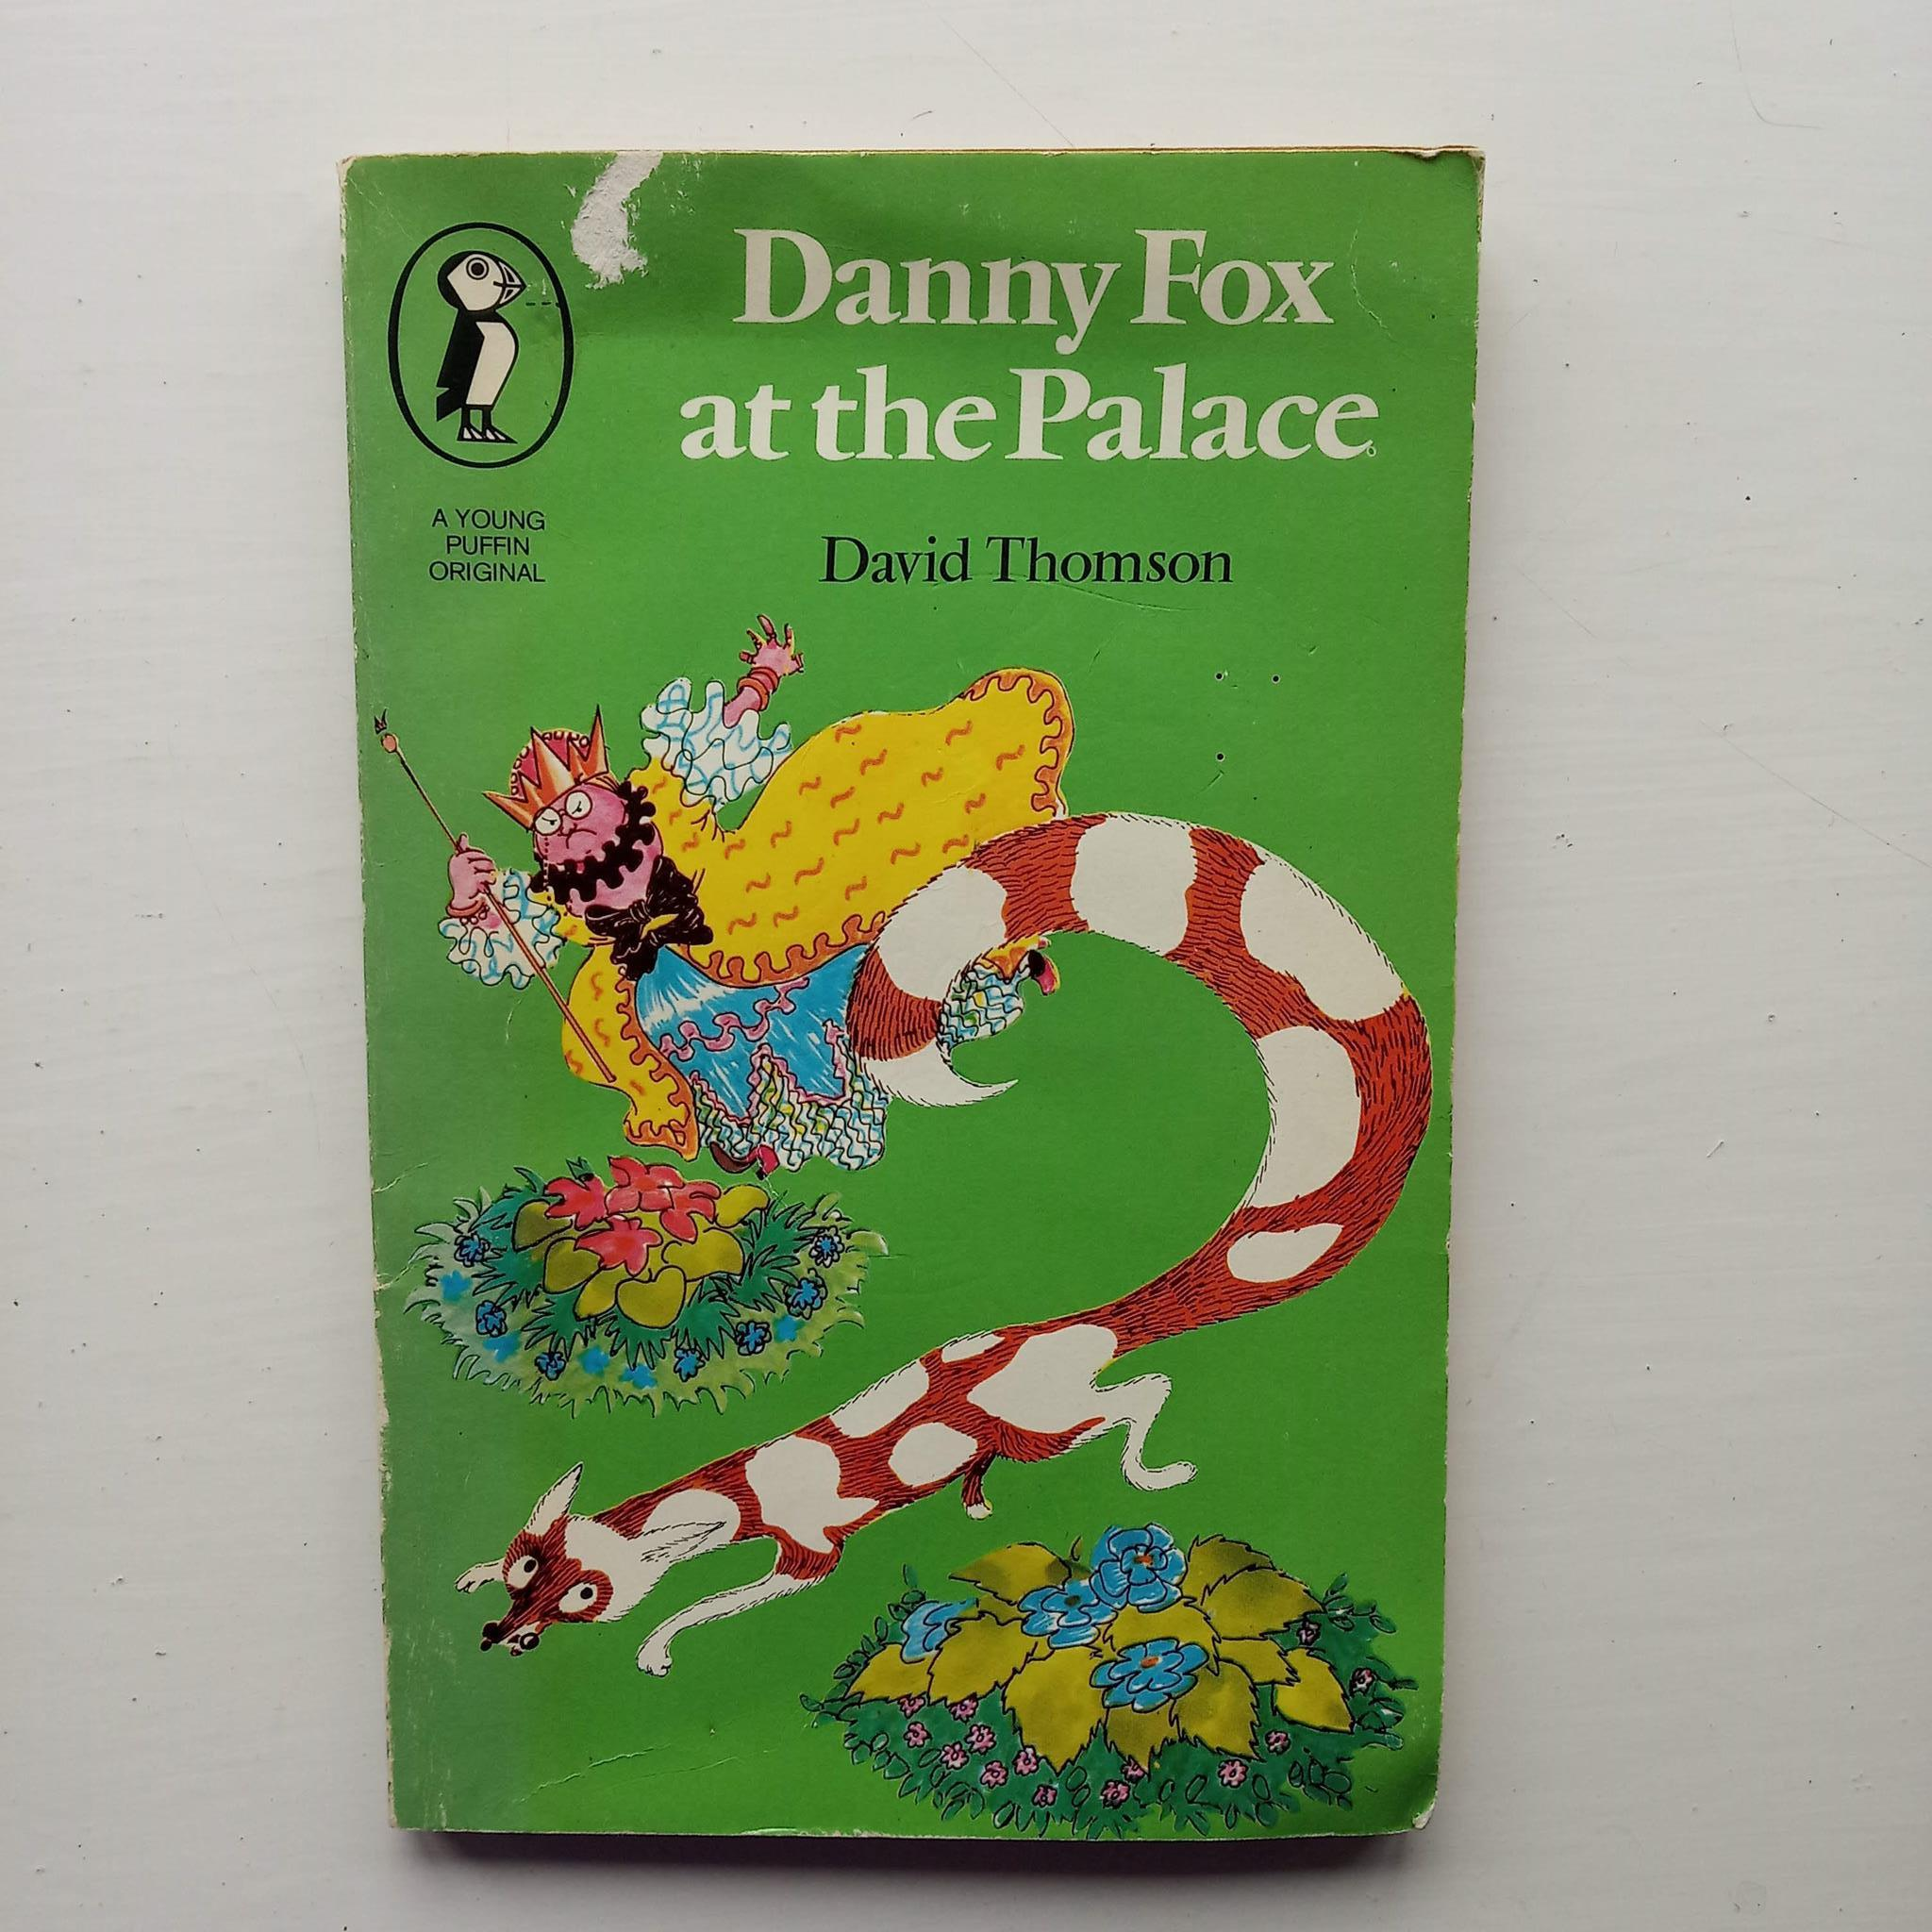 Danny Fox at the Palace by David Thomson